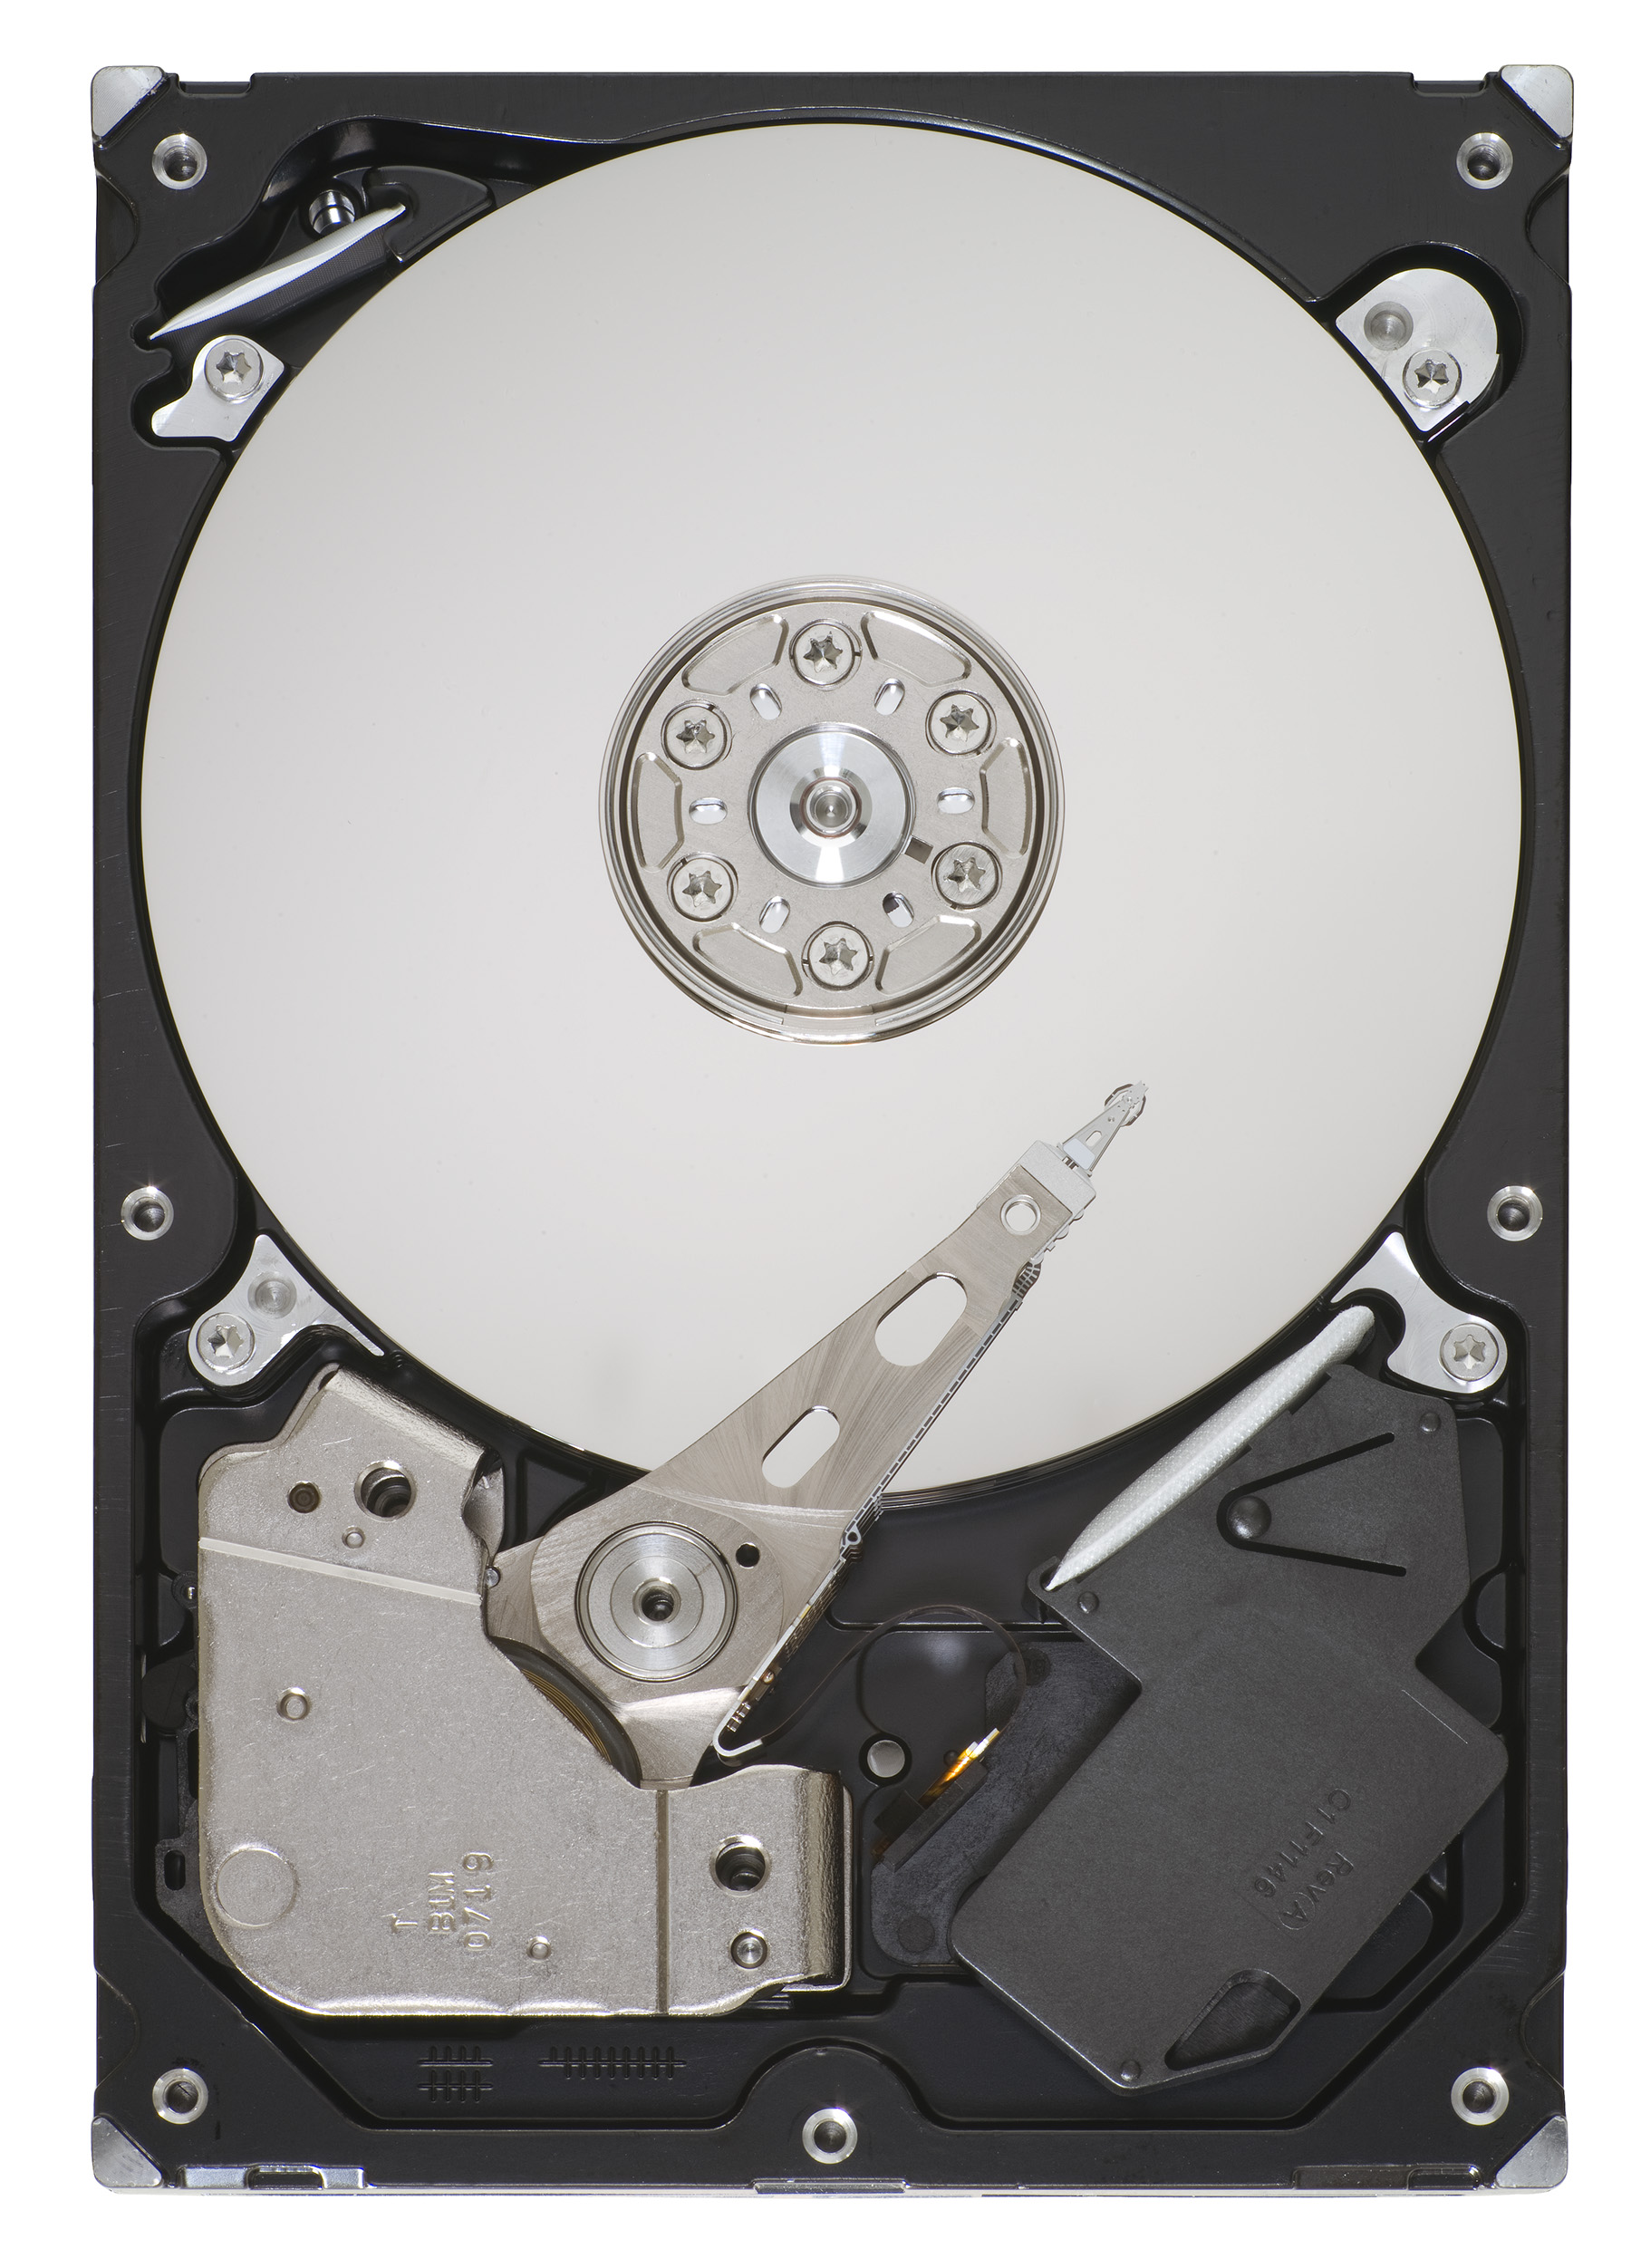 Seagate's Barracuda LP sports 5900 rpm performance and low power